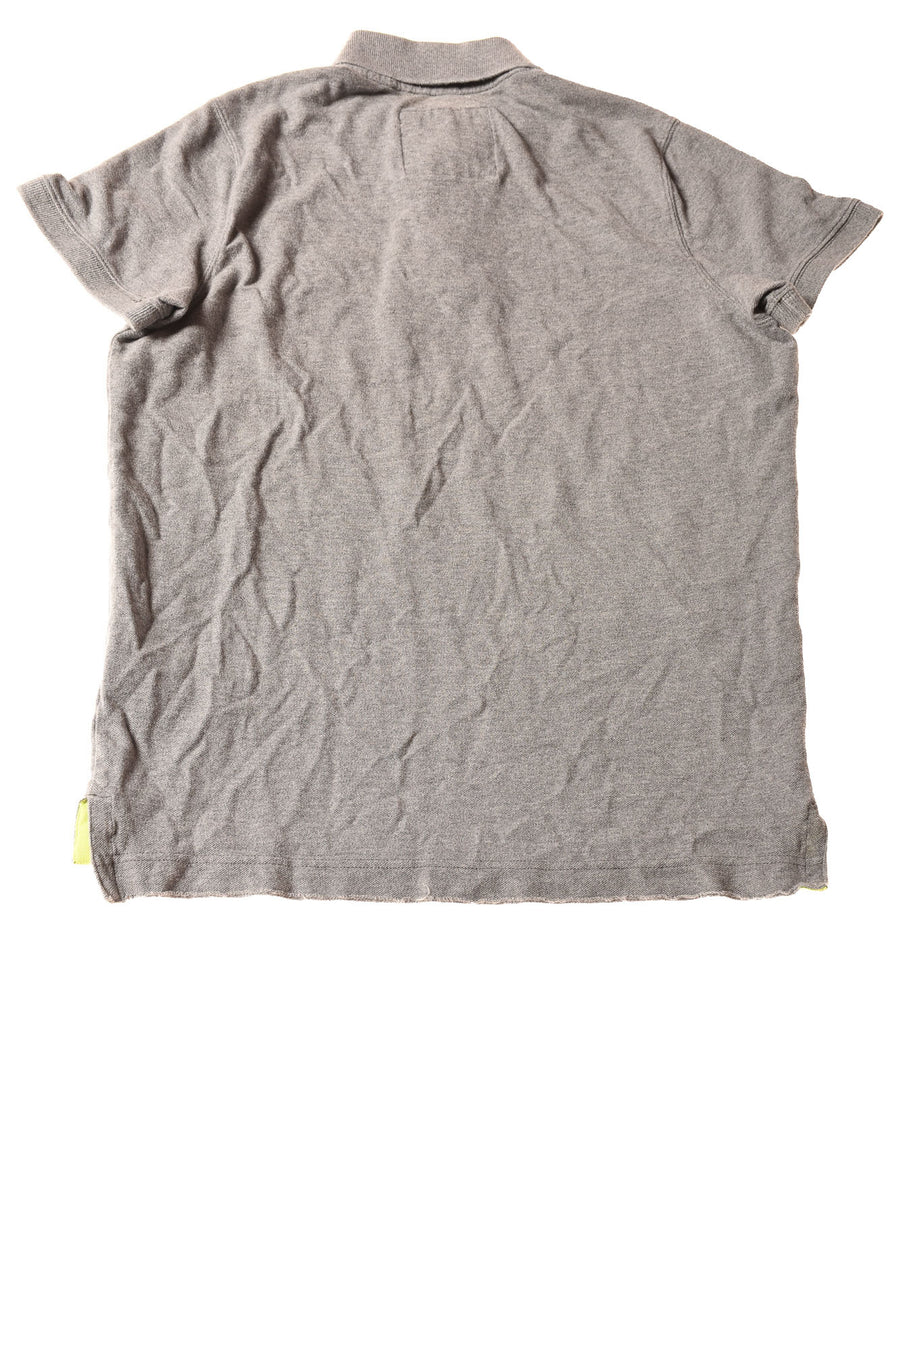 USED abercrombie Men's Shirt XX-Large Gray